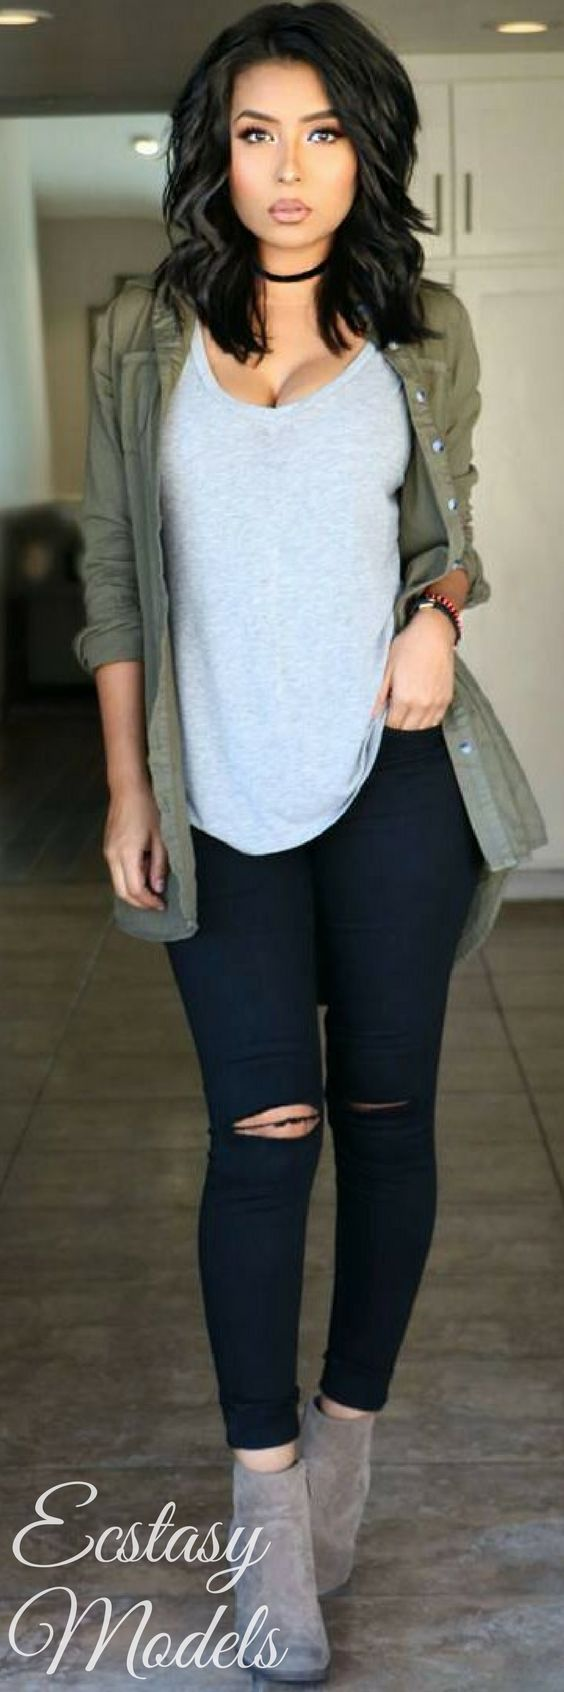 Best 25+ Casual outfits ideas on Pinterest | Simple casual outfits ...